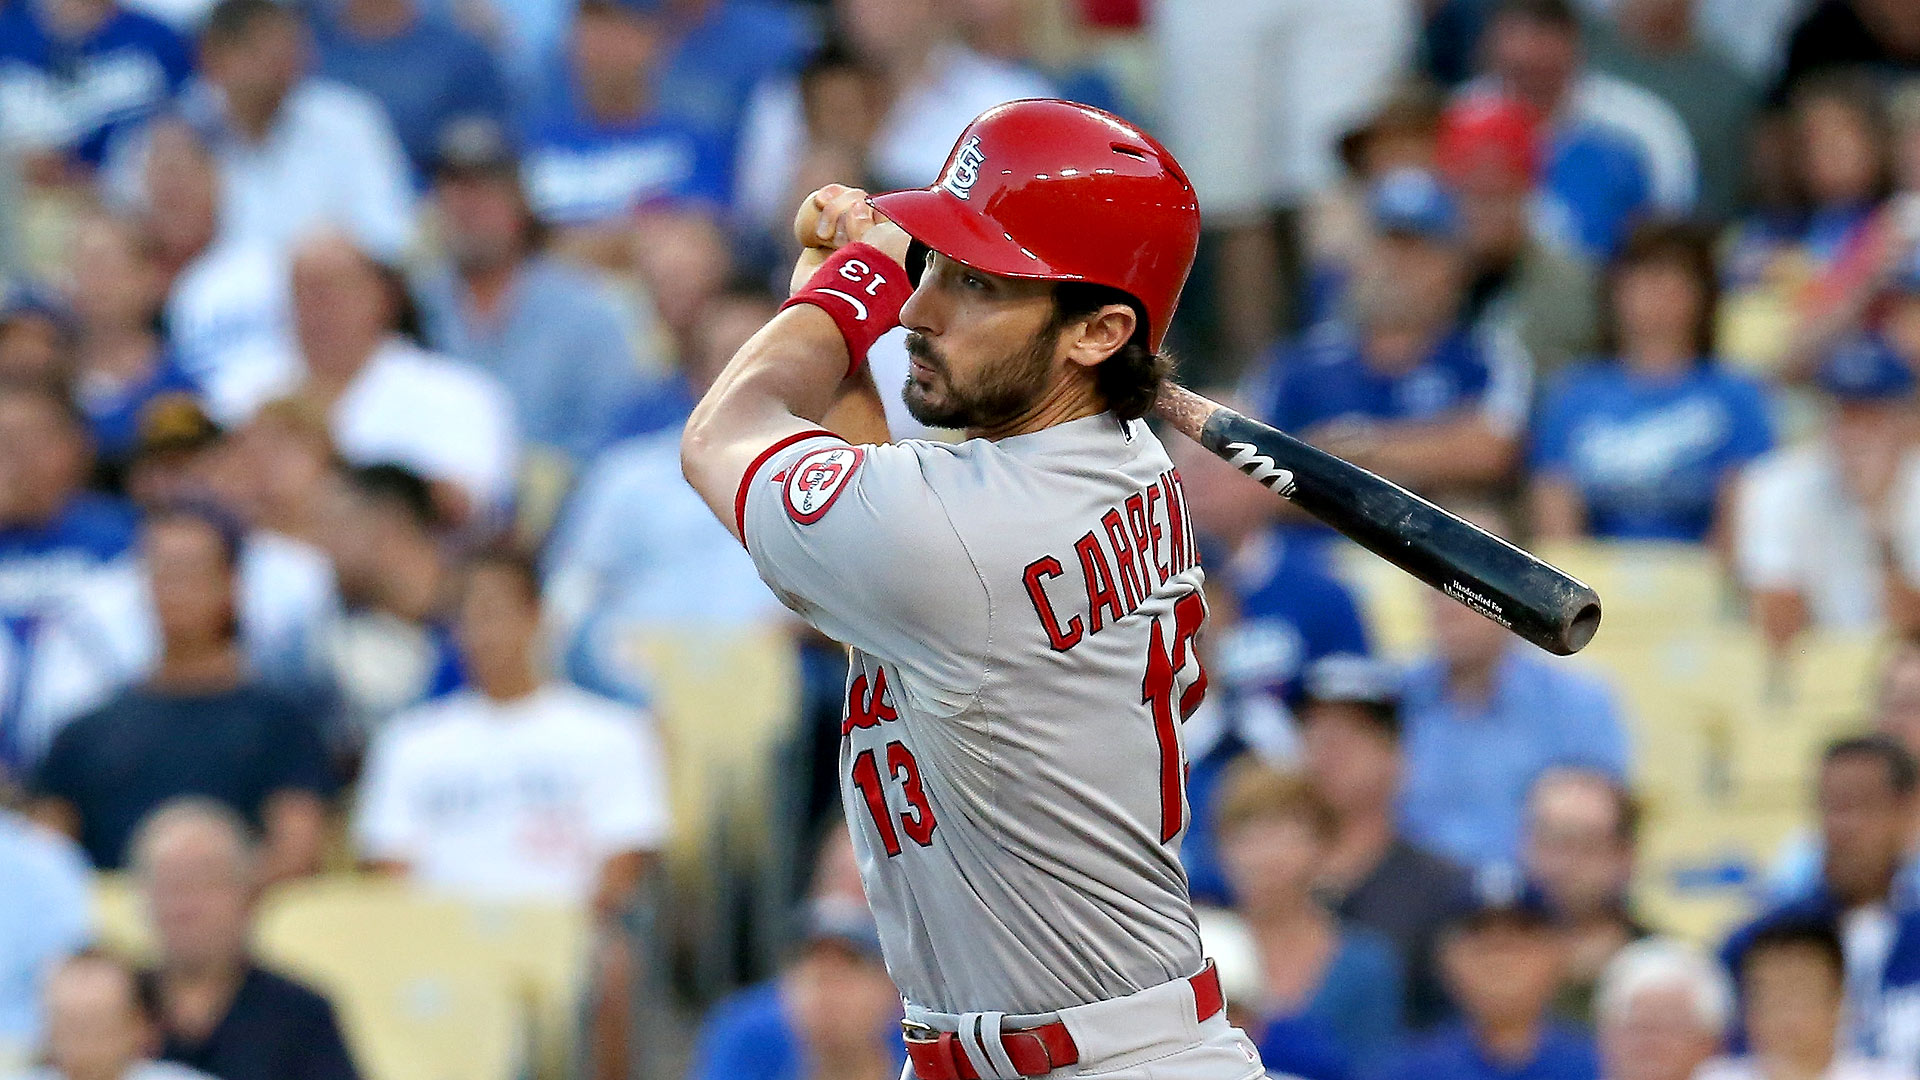 Reports: Cards 3B Carpenter inks $52M deal